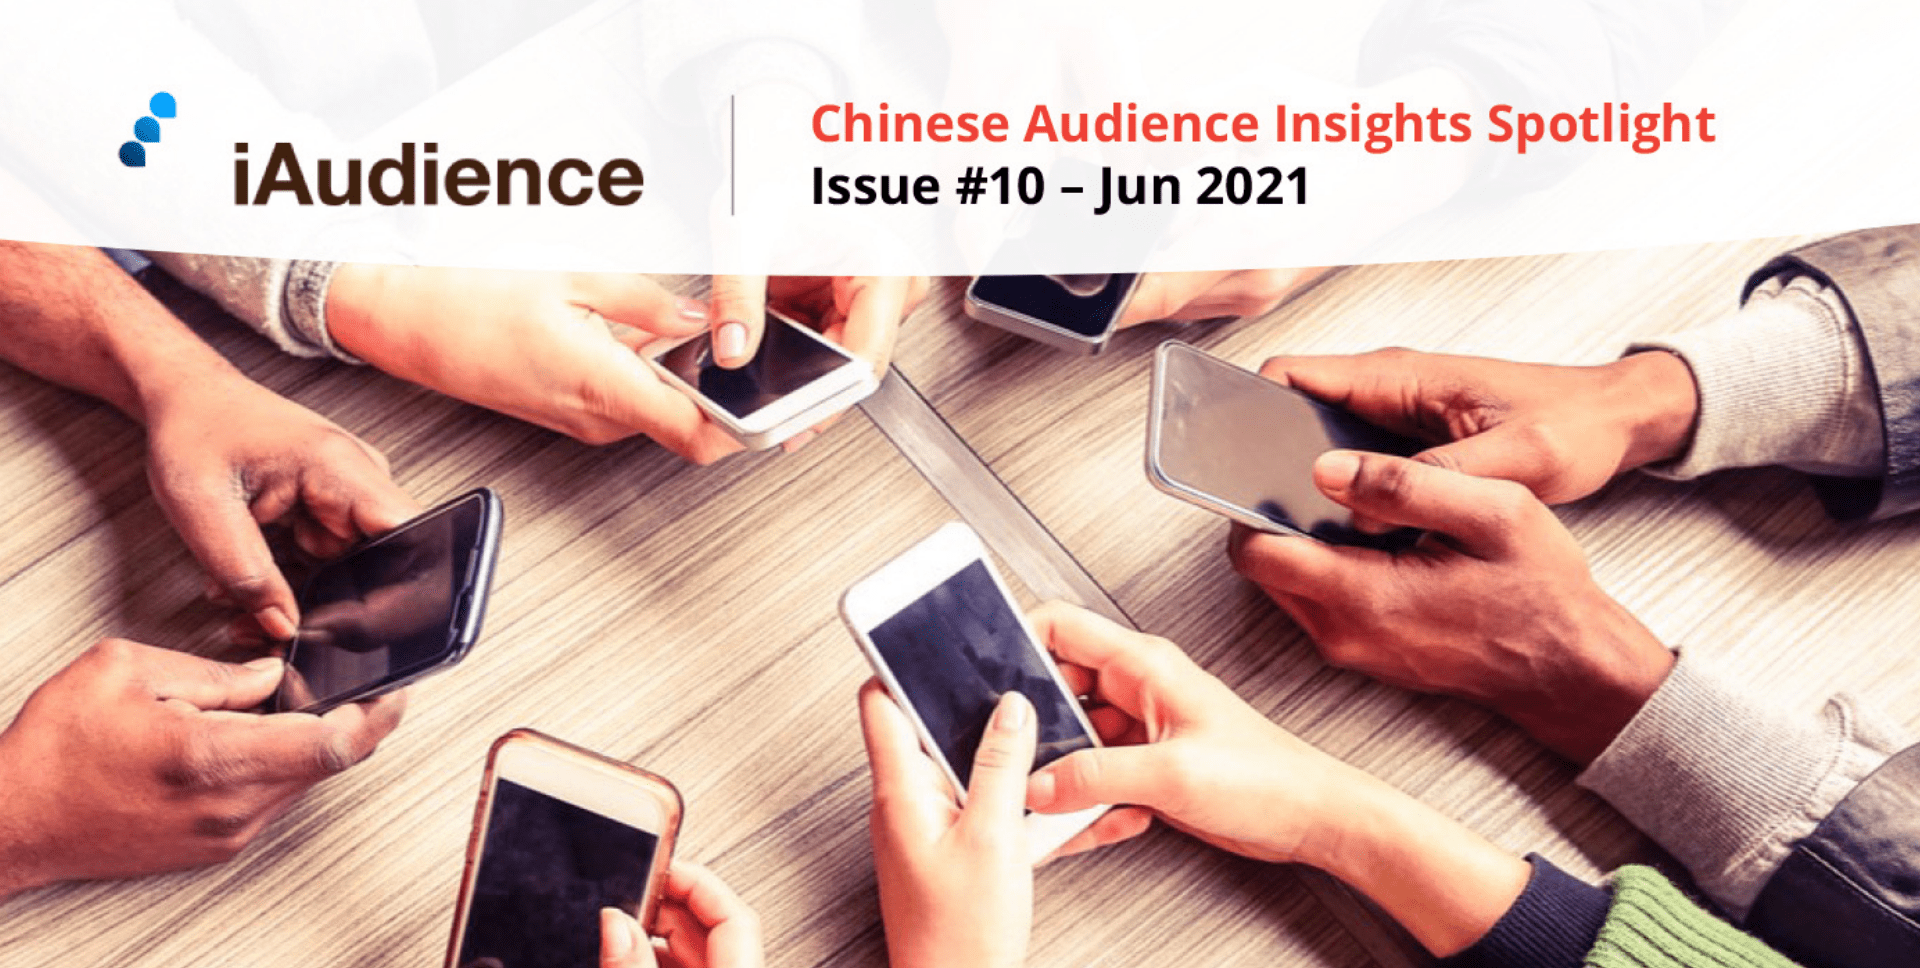 iAudience Insights Spotlight – Issue #10: Discover the Latest Smartphone Trends in China